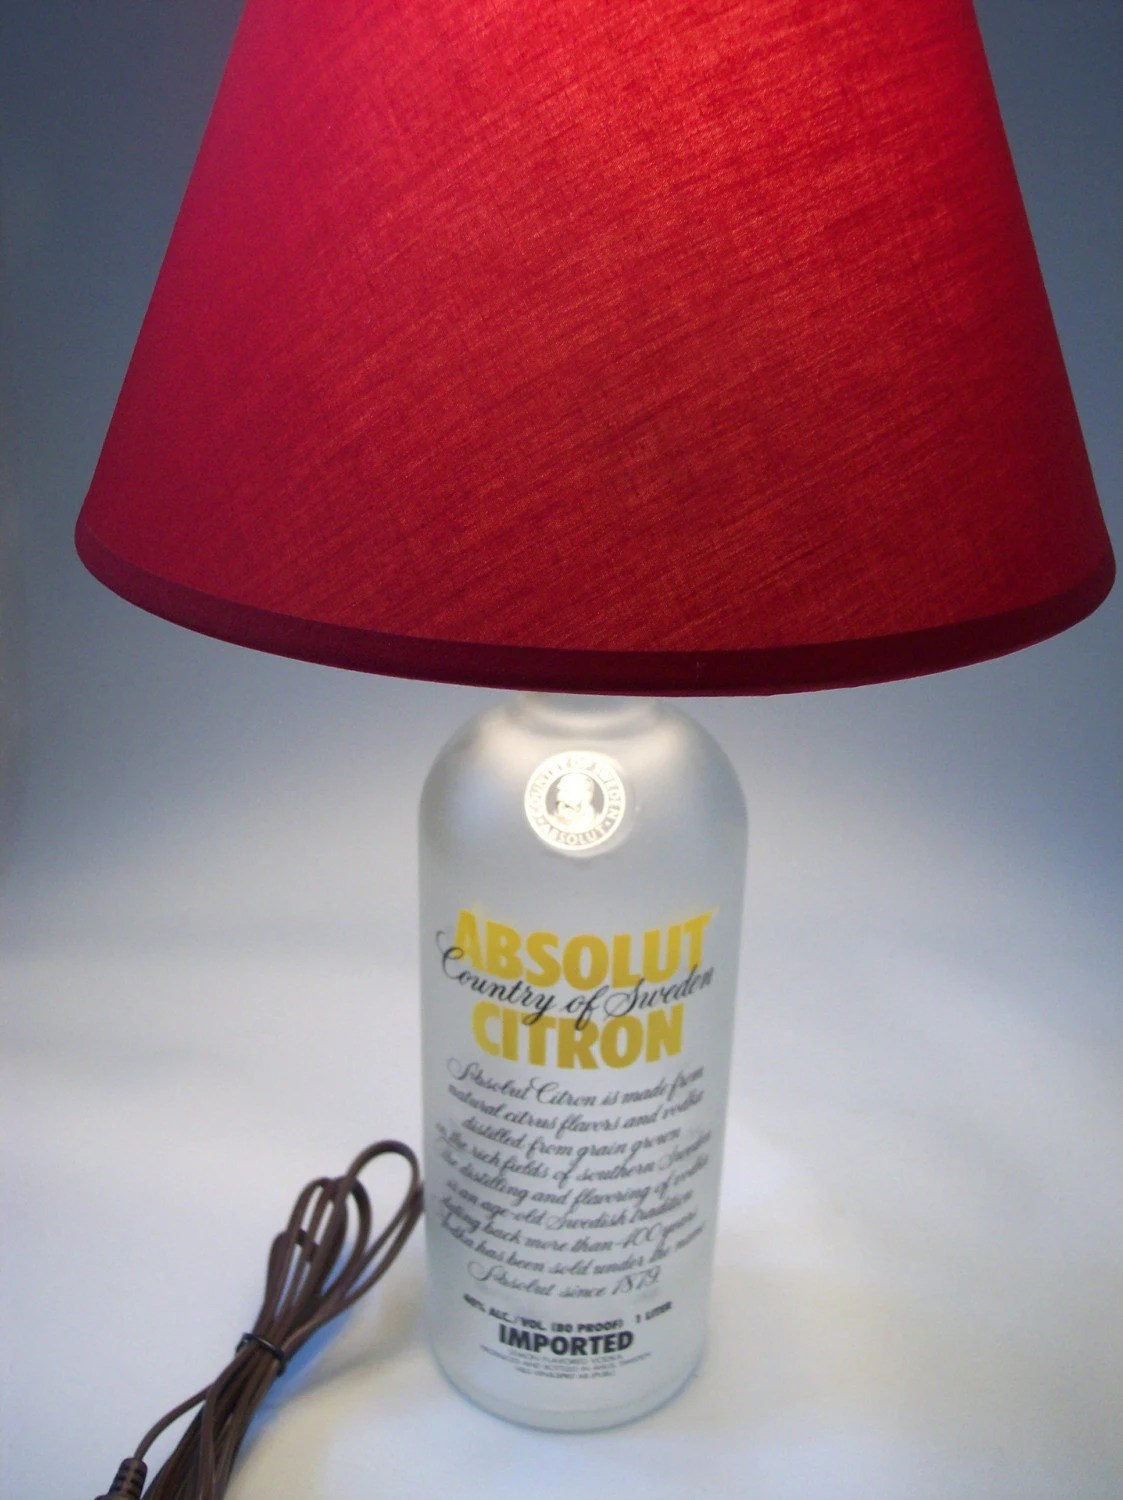 Absolute Citron Bar Lamp, Recycled Bottle Glass Lighting